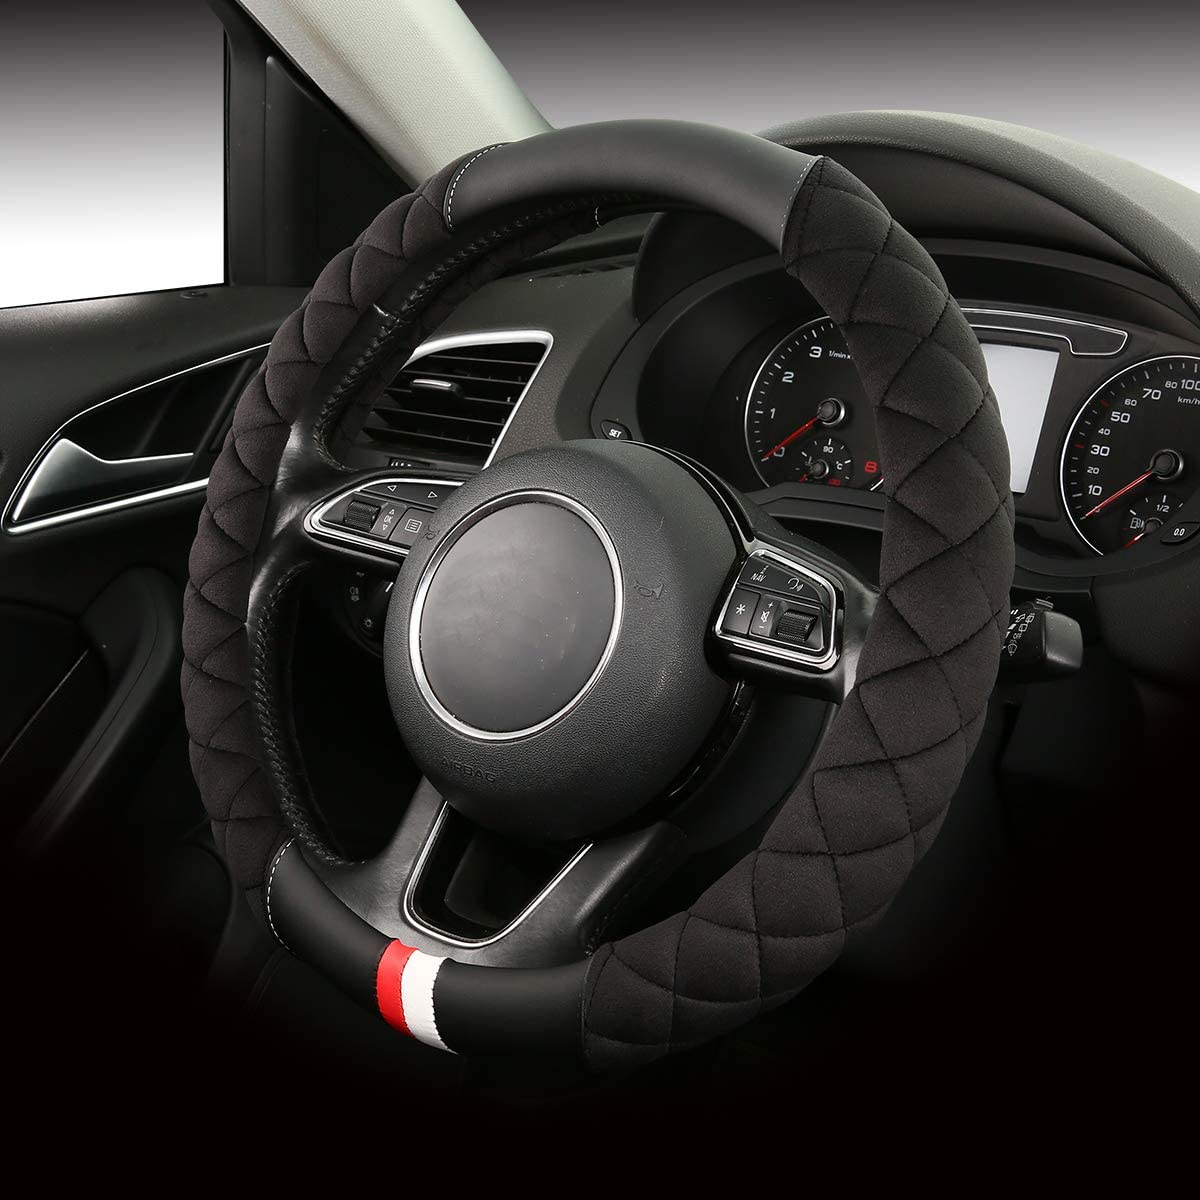 Plush-bla Plush Steering Wheel Cover for Men-Fuzzy Steering Covers Keep Warm Universal Size